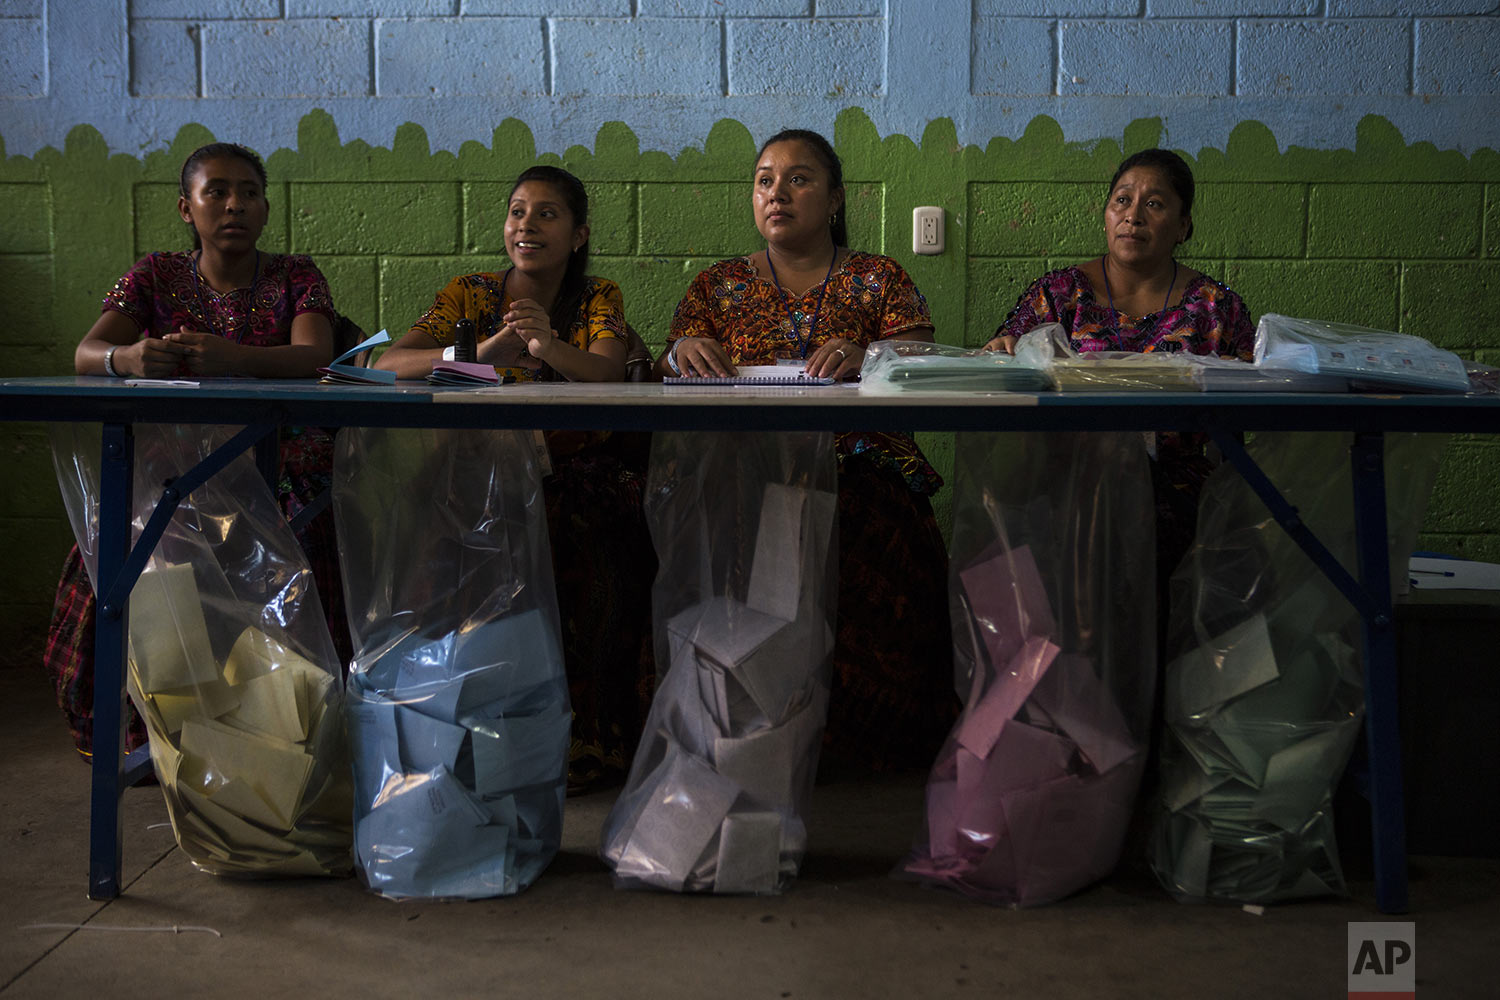 Electoral workers wait for people to cast their votes during general elections in Chinautla on the outskirts of Guatemala City, Sunday, June 16, 2019. Guatemalans are voting for their next president in elections plagued by widespread disillusion and distrust, and as thousands of their compatriots flee poverty and gang violence to seek a new life in the United States. (AP Photo/Oliver de Ros)